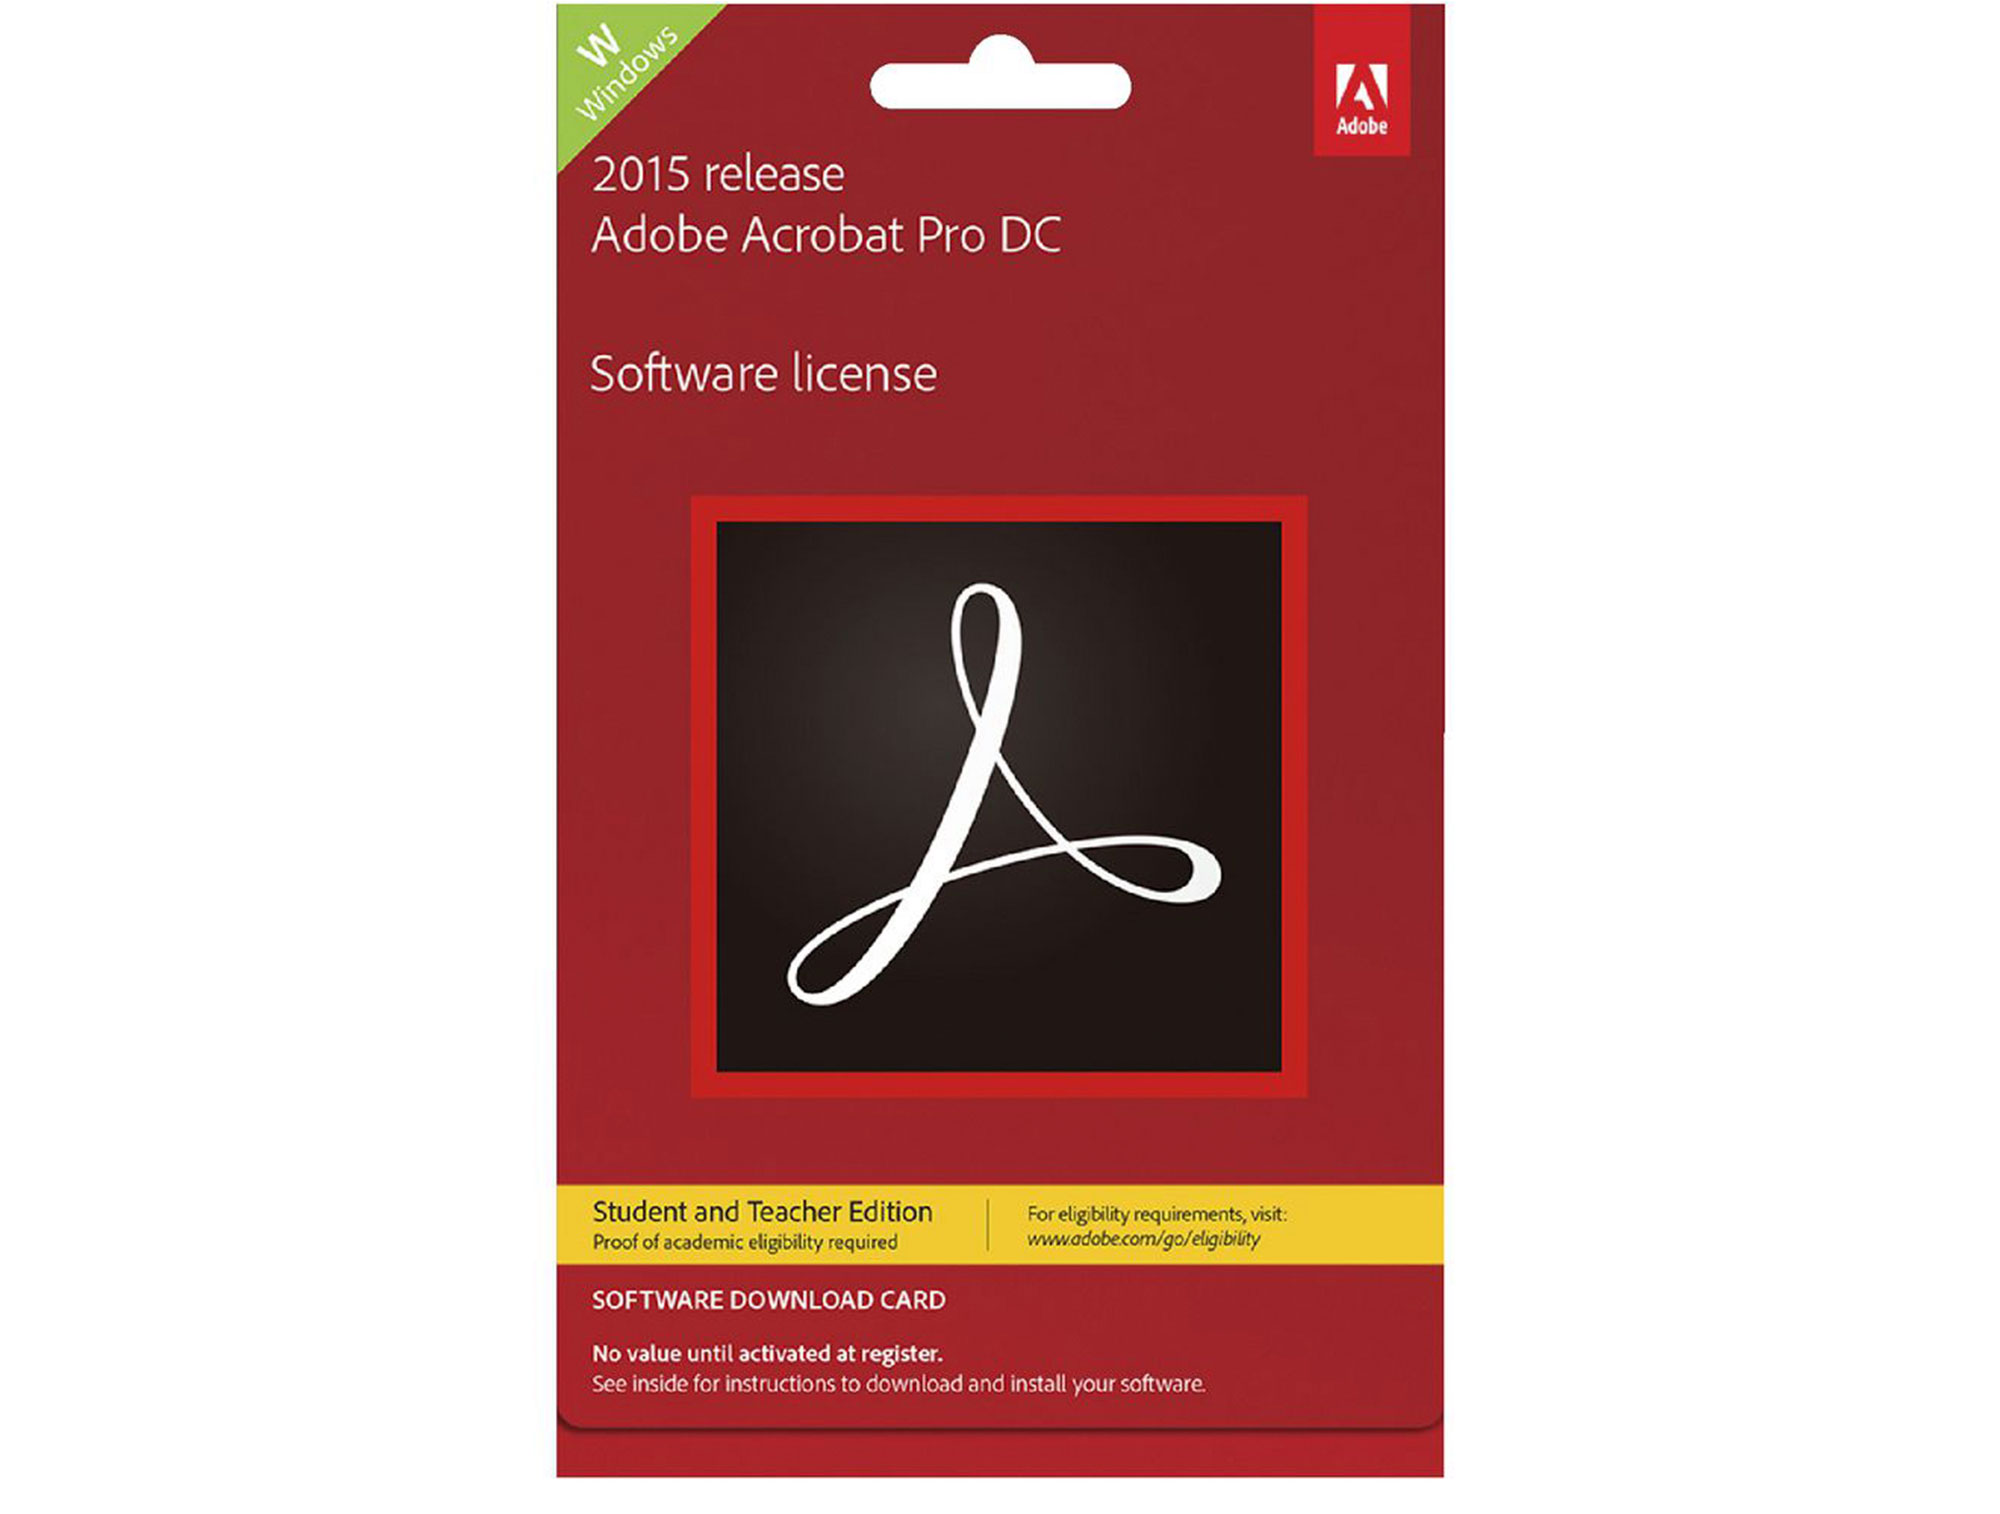 Adobe acrobat pro dc student and teacher edition purchase by cheap